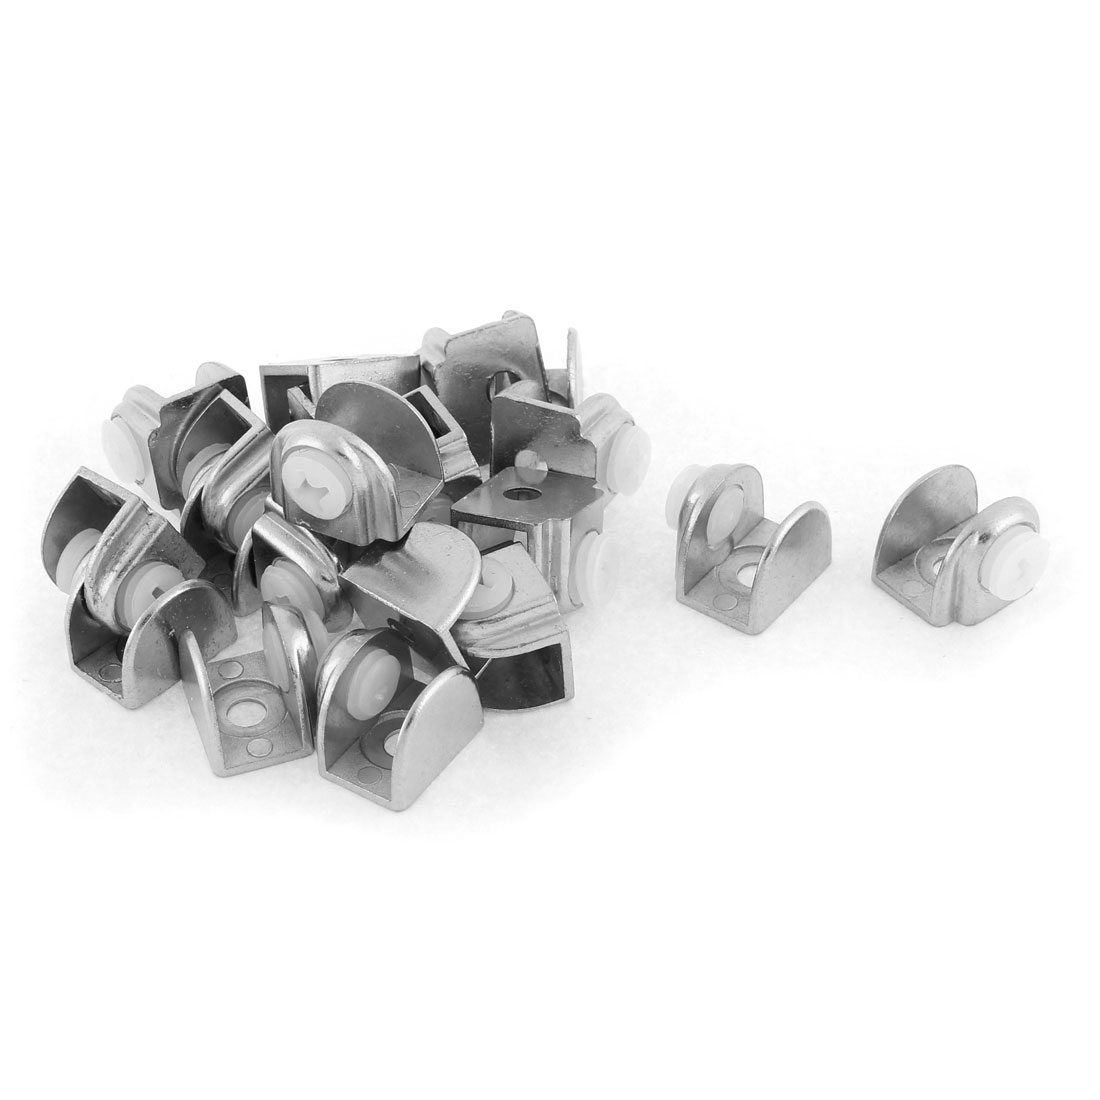 Semicircle 5-9mm Thickness Glass Shelf Clip Clamp Holder Support Bracket 20pcs